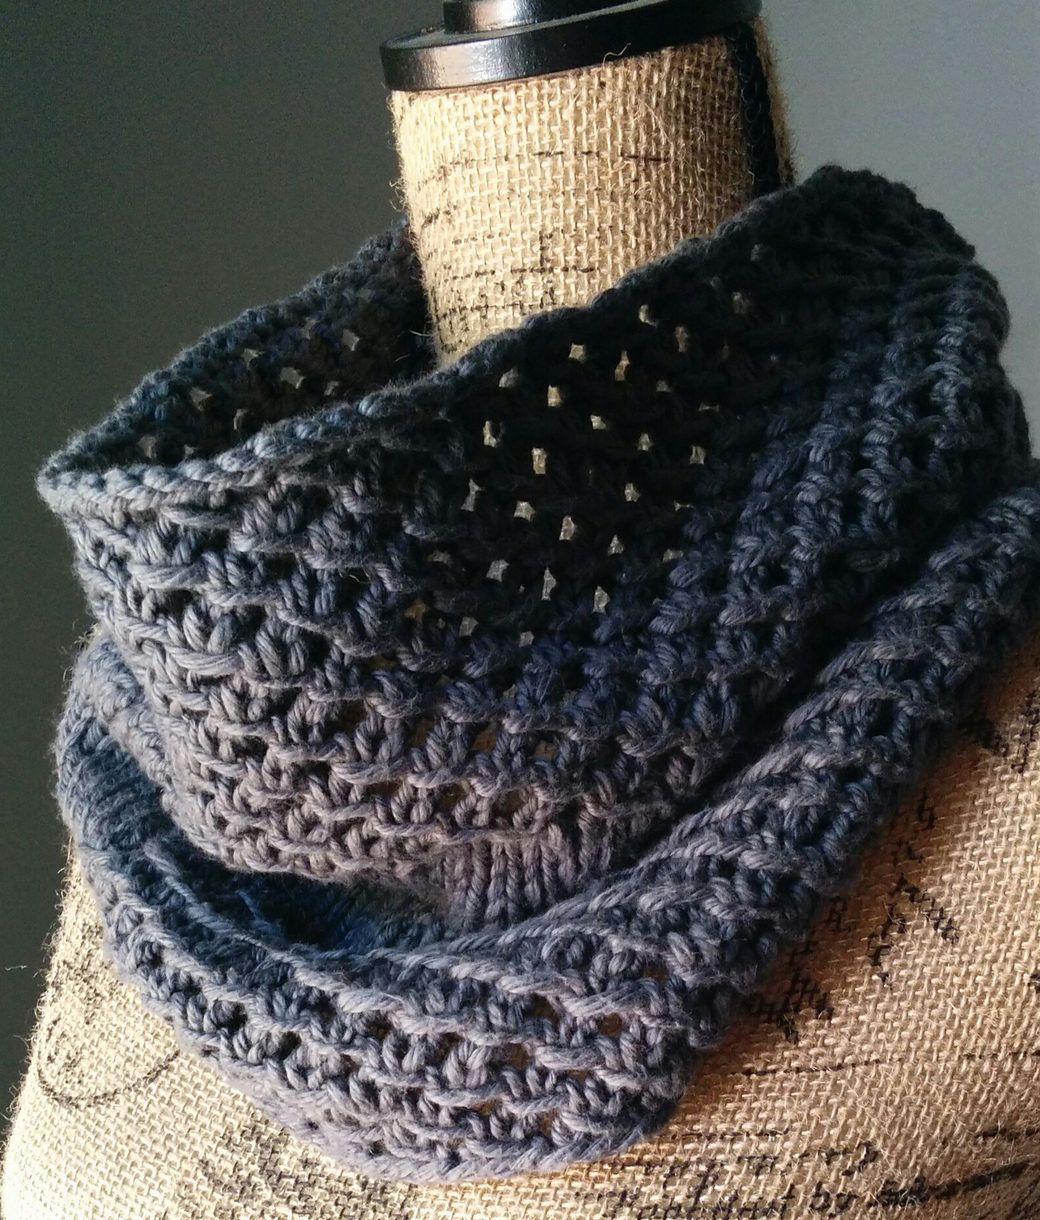 Free knitting pattern for 4 row repeat irish mesh cowl easy cowl free knitting pattern for 4 row repeat irish mesh cowl easy cowl with 4 row repeat mesh sections separated by a knit section quick knit in bulky yarn bankloansurffo Choice Image